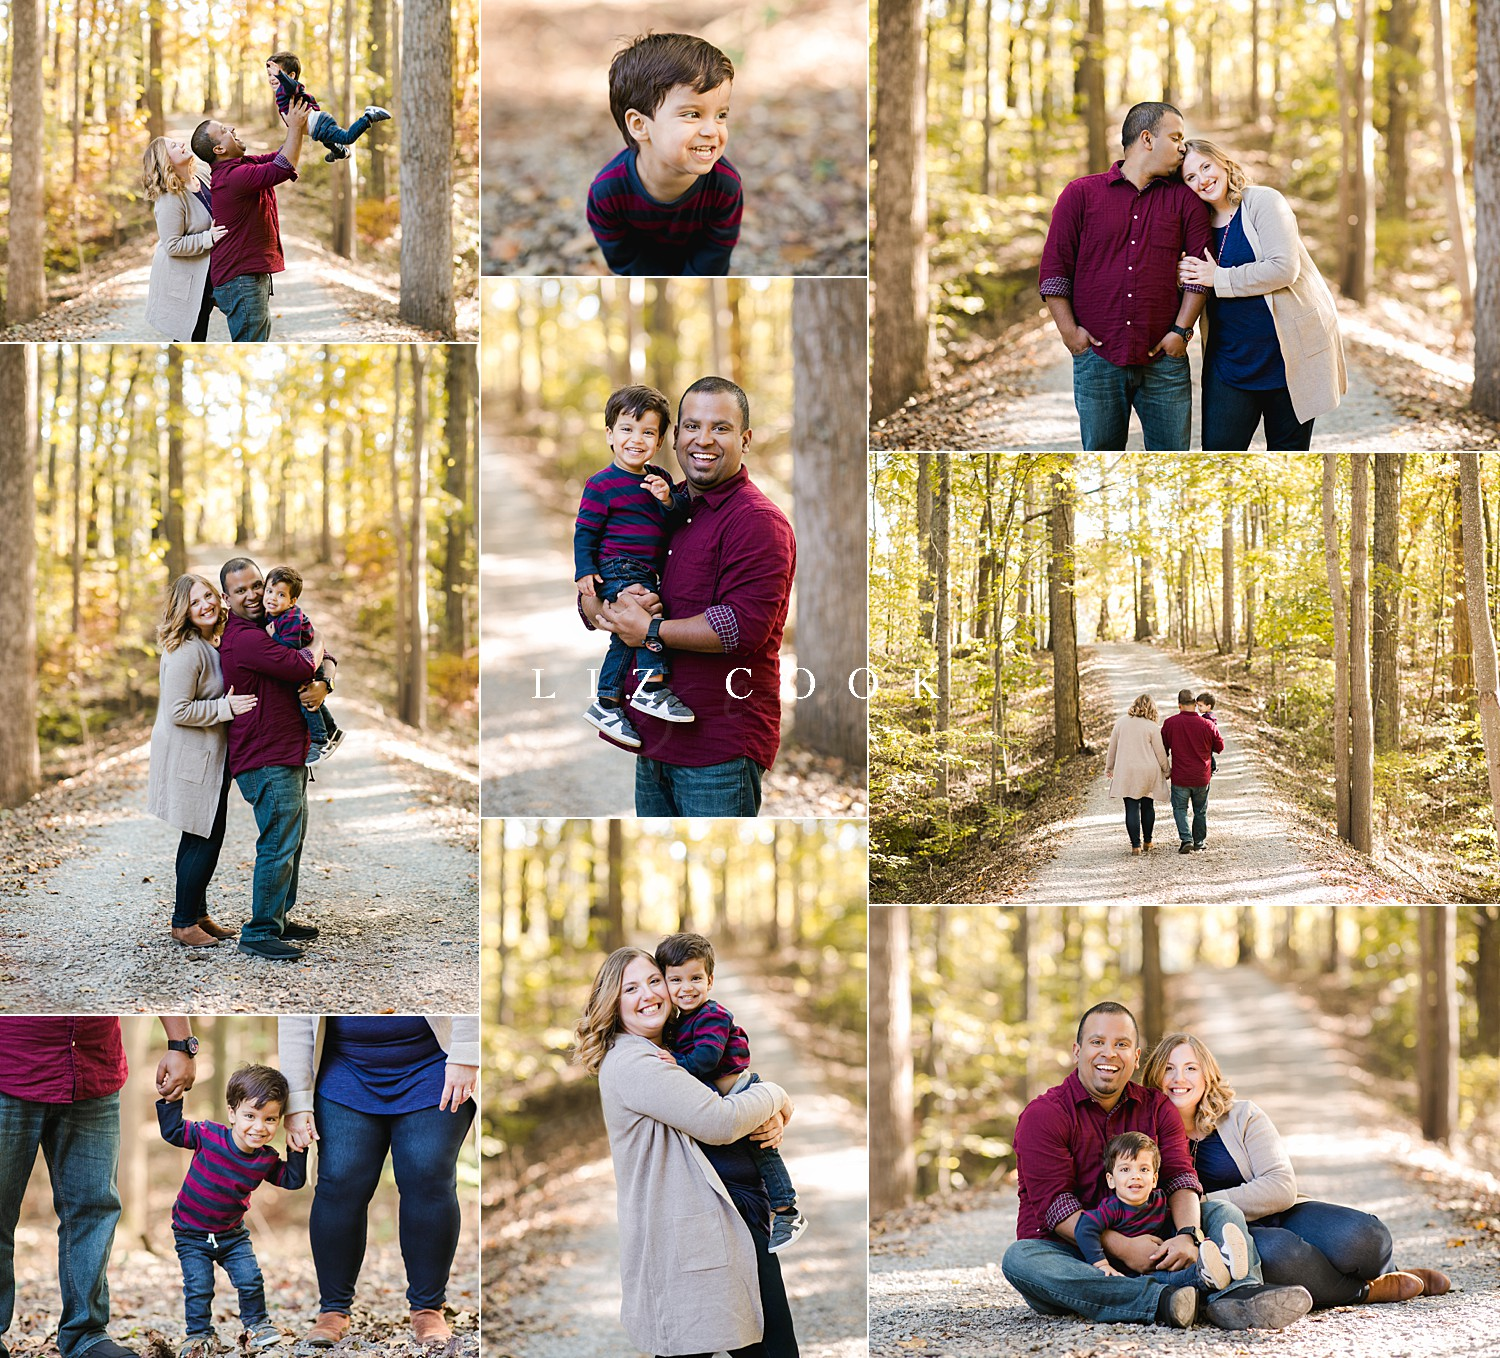 lychburg-virginia-family-pictures-fall-2019-0007.jpg